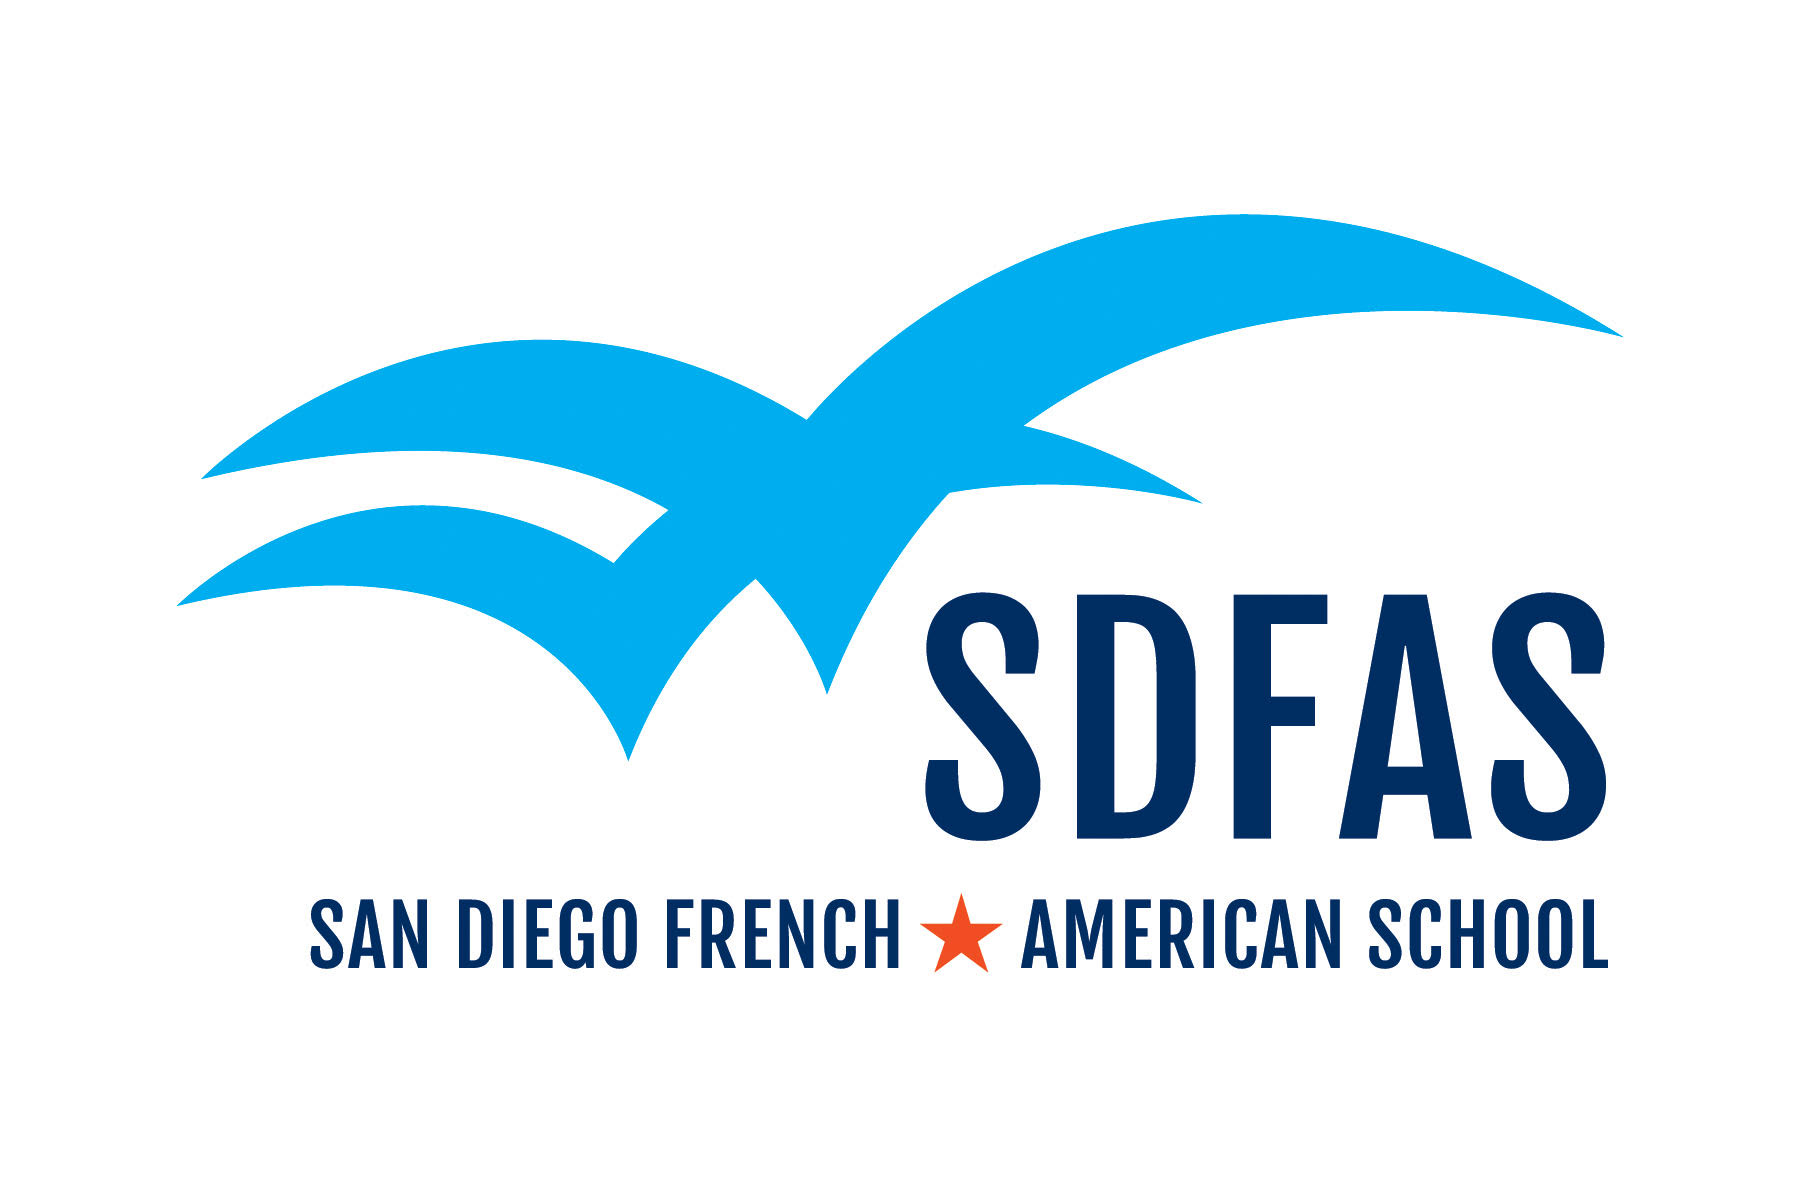 San Diego French American School